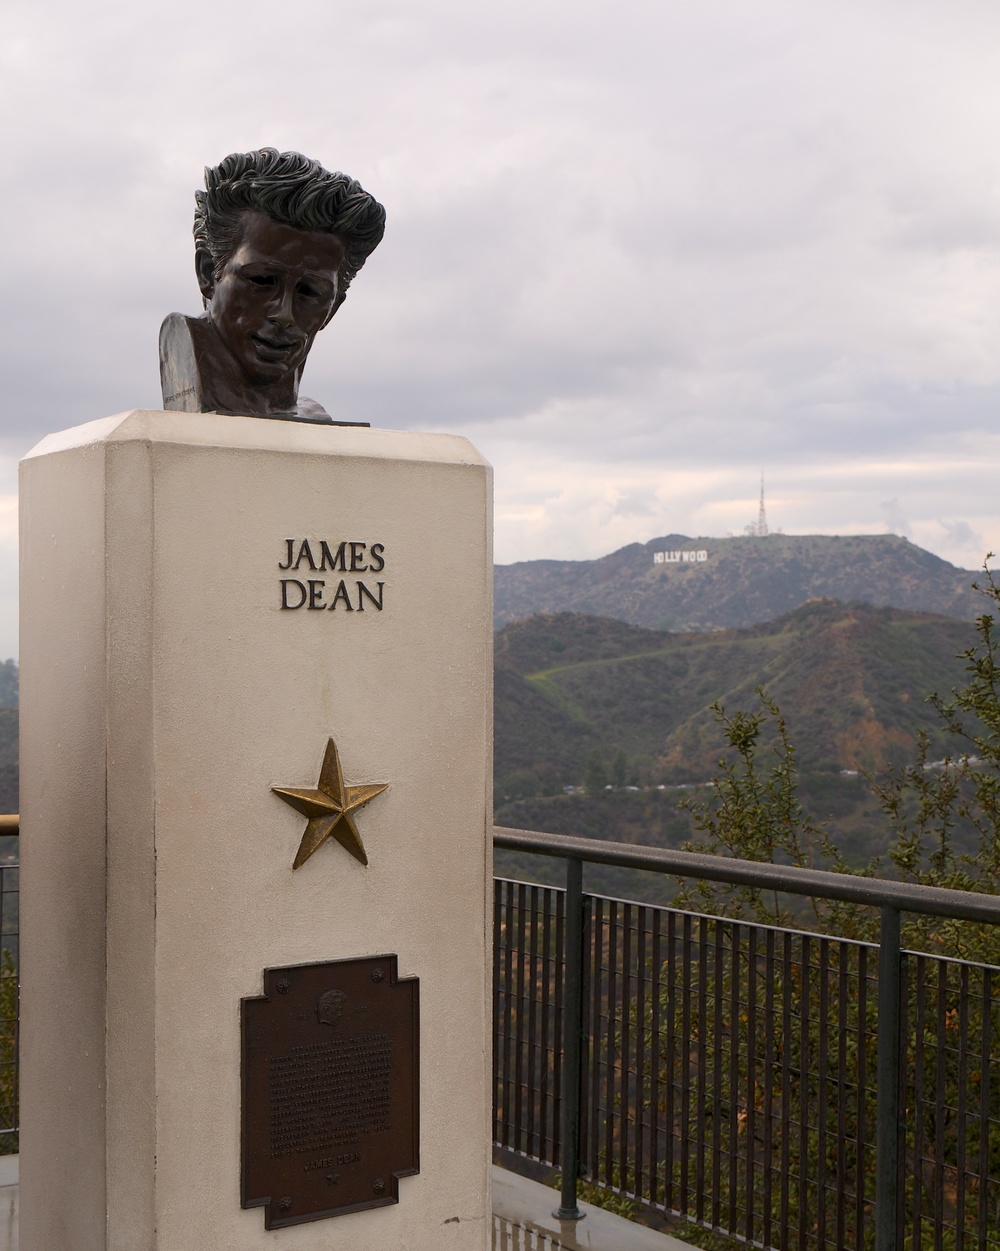 This tribute to James Dean is on the observatory grounds to commemorate  Rebel Without a Cause